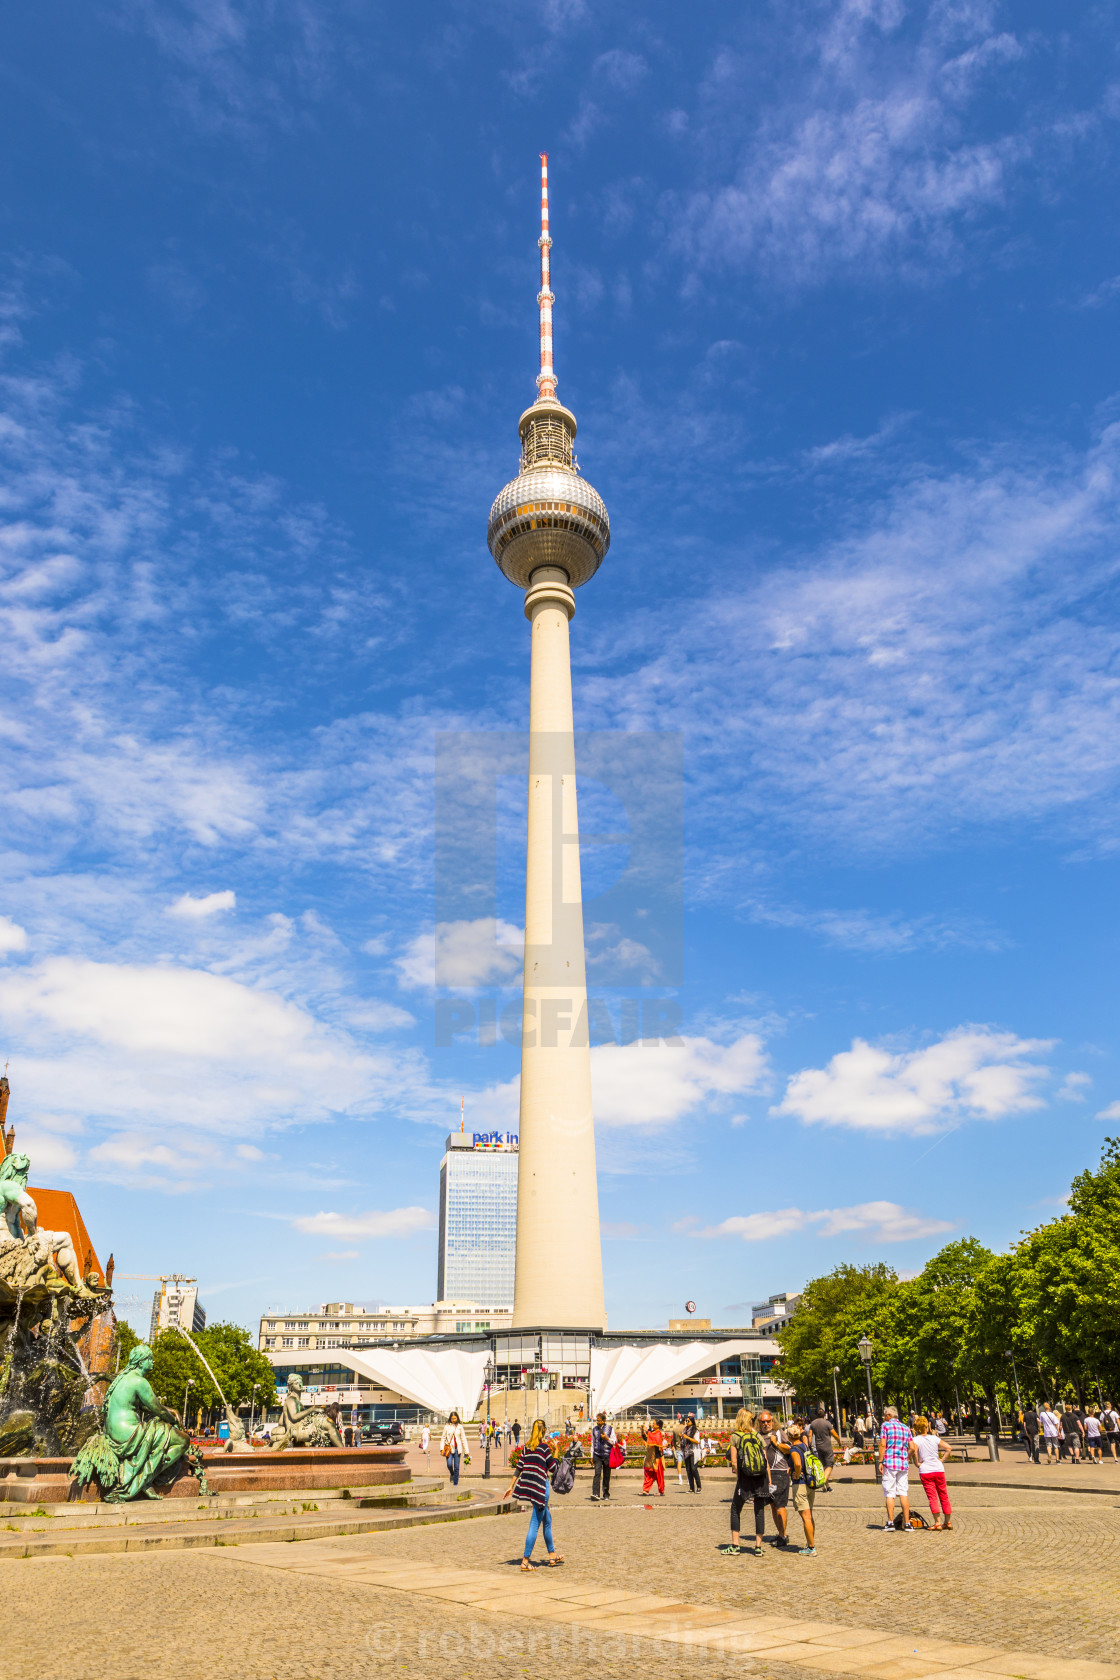 the berlin television tower